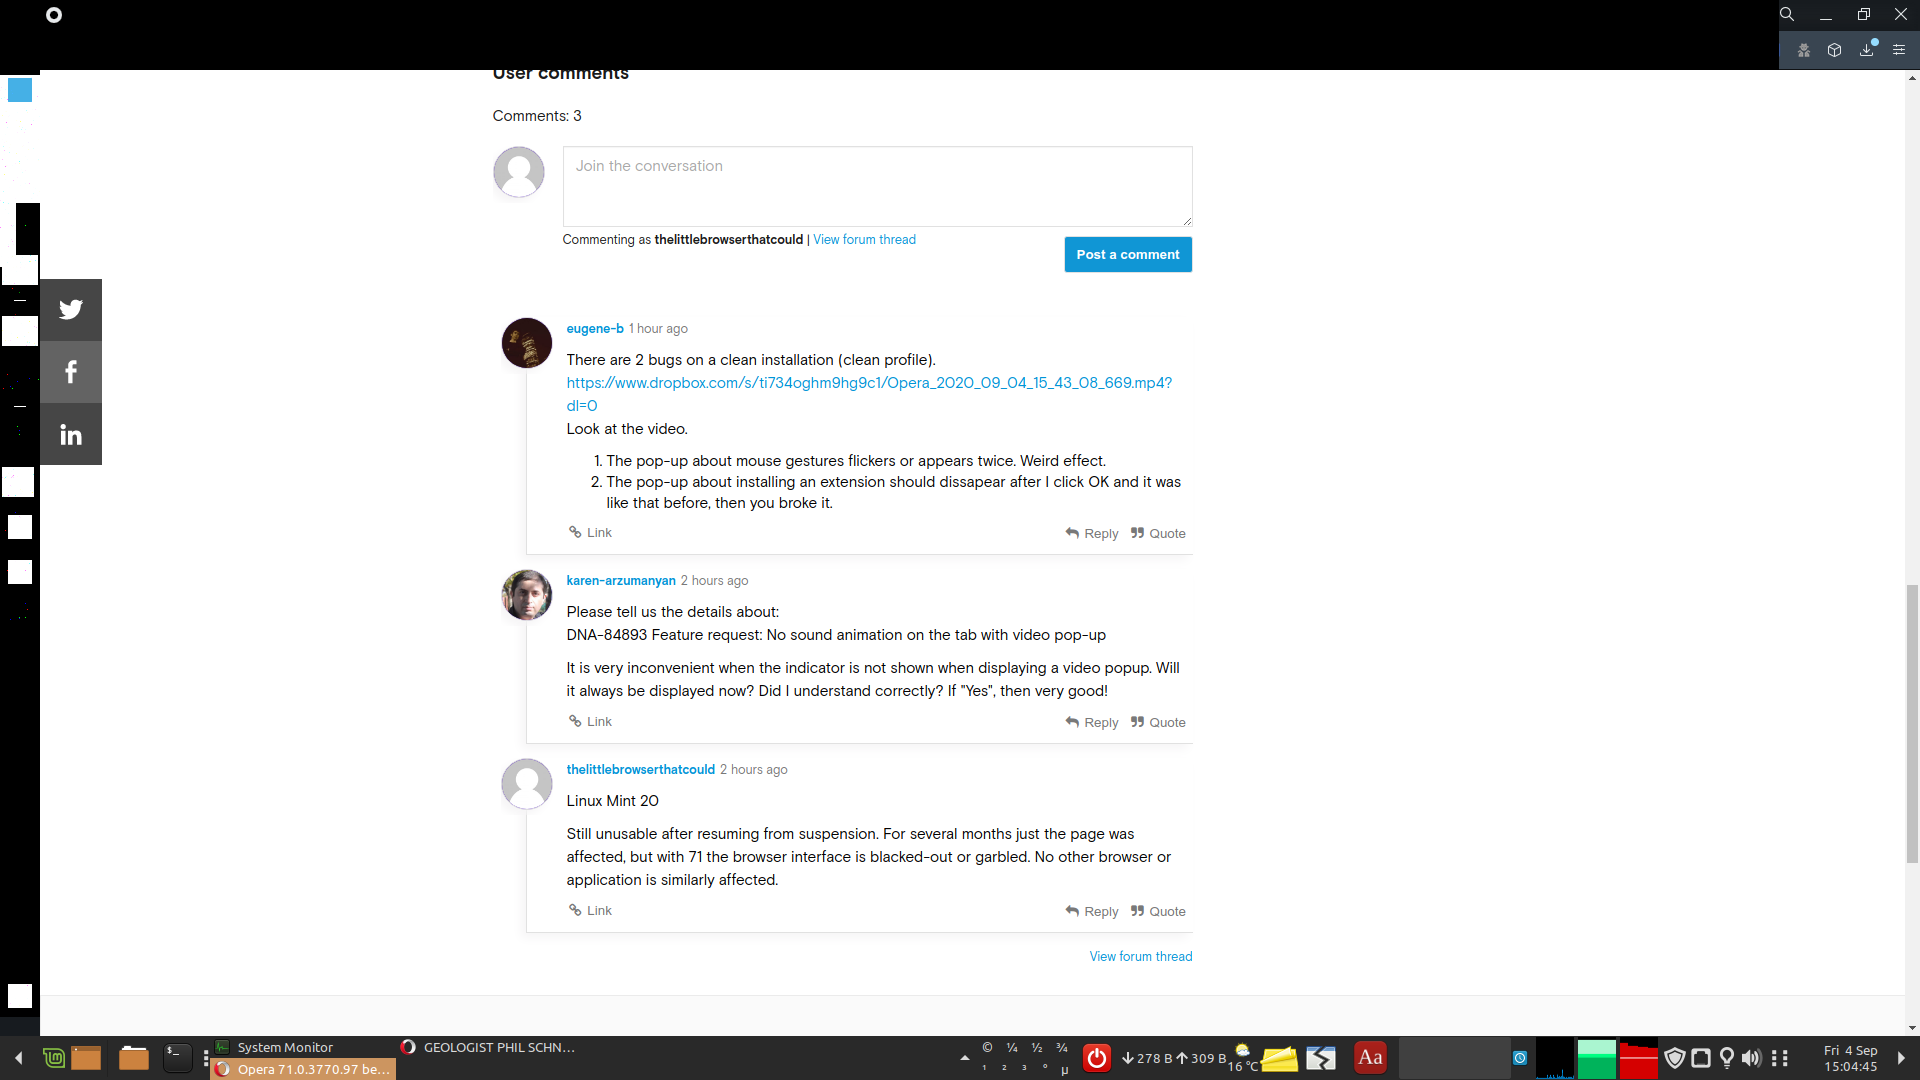 Opera after suspend, refreshed page - Screenshot at 2020-09-04 15-04-45.png